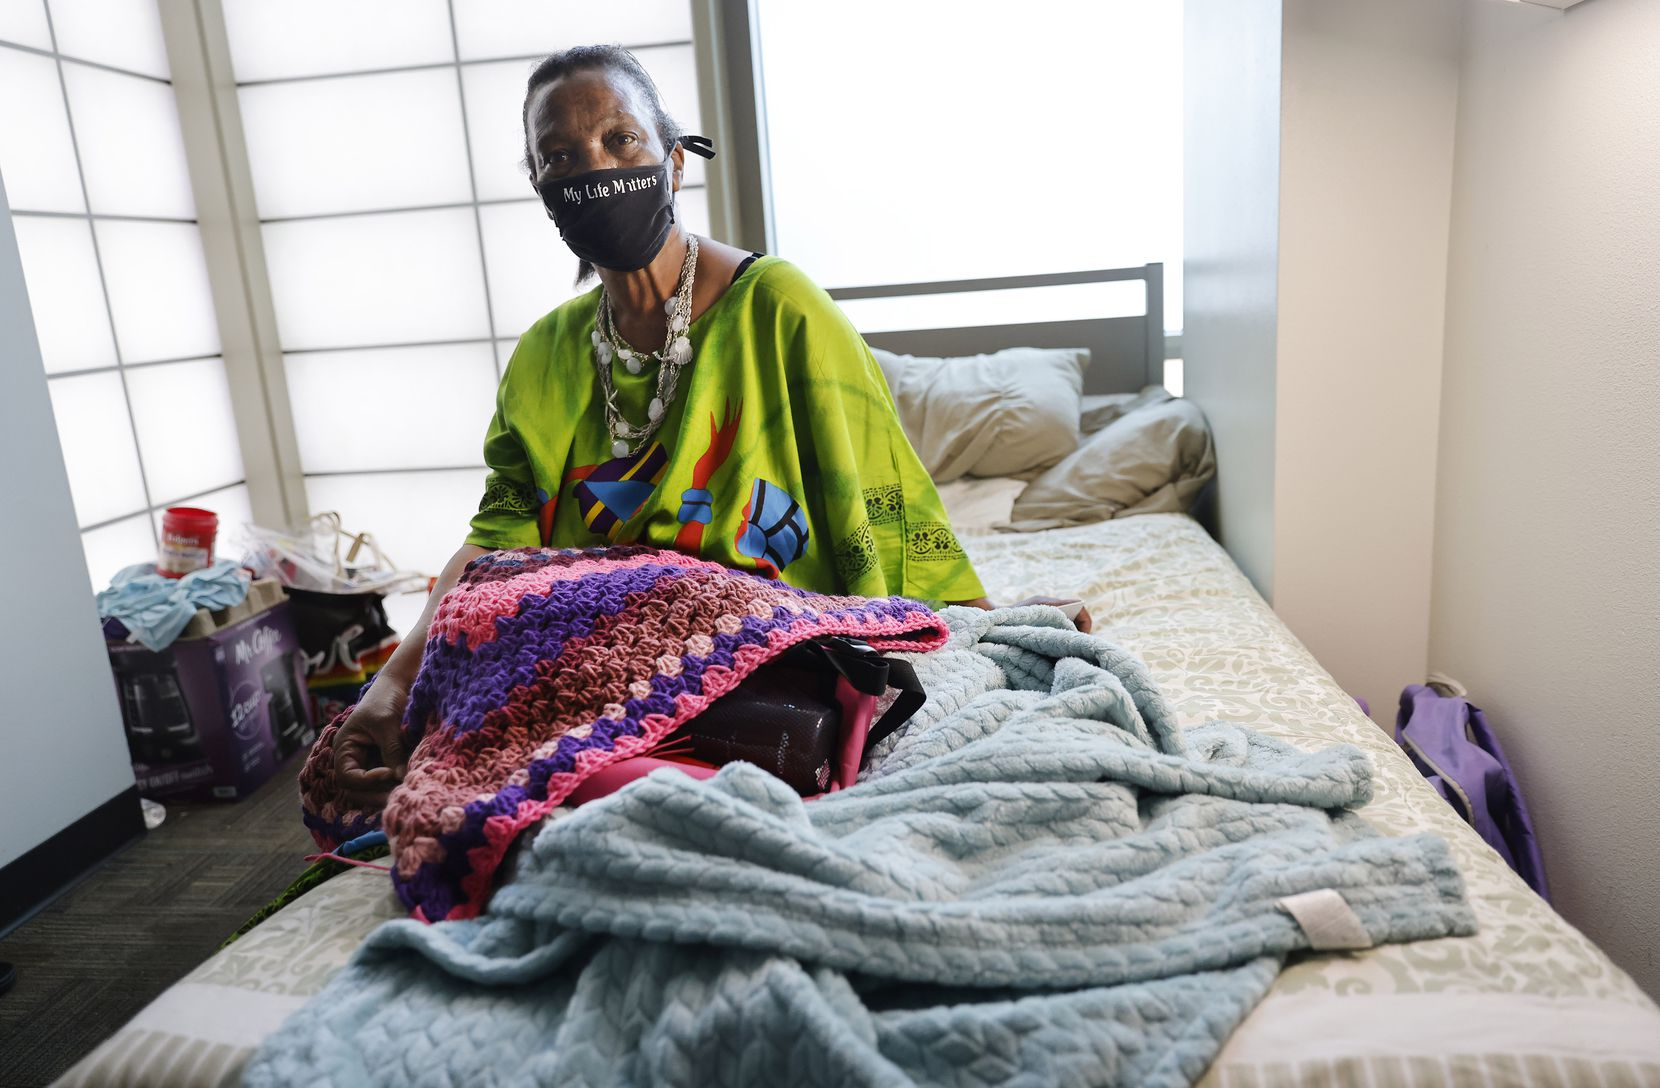 Patricia Freeman, 65, found her way to The Bridge Homeless Recovery Center in downtown Dallas earlier this year after nearly freezing to death at a Houston bus stop during February's deadly storm. She plans to get settled into a more permanent place through rapid rehousing with the assistance of her case manager, Amanda Crowe. Patricia is photographed in her transitional room with a blanket she is crocheting at The Bridge,